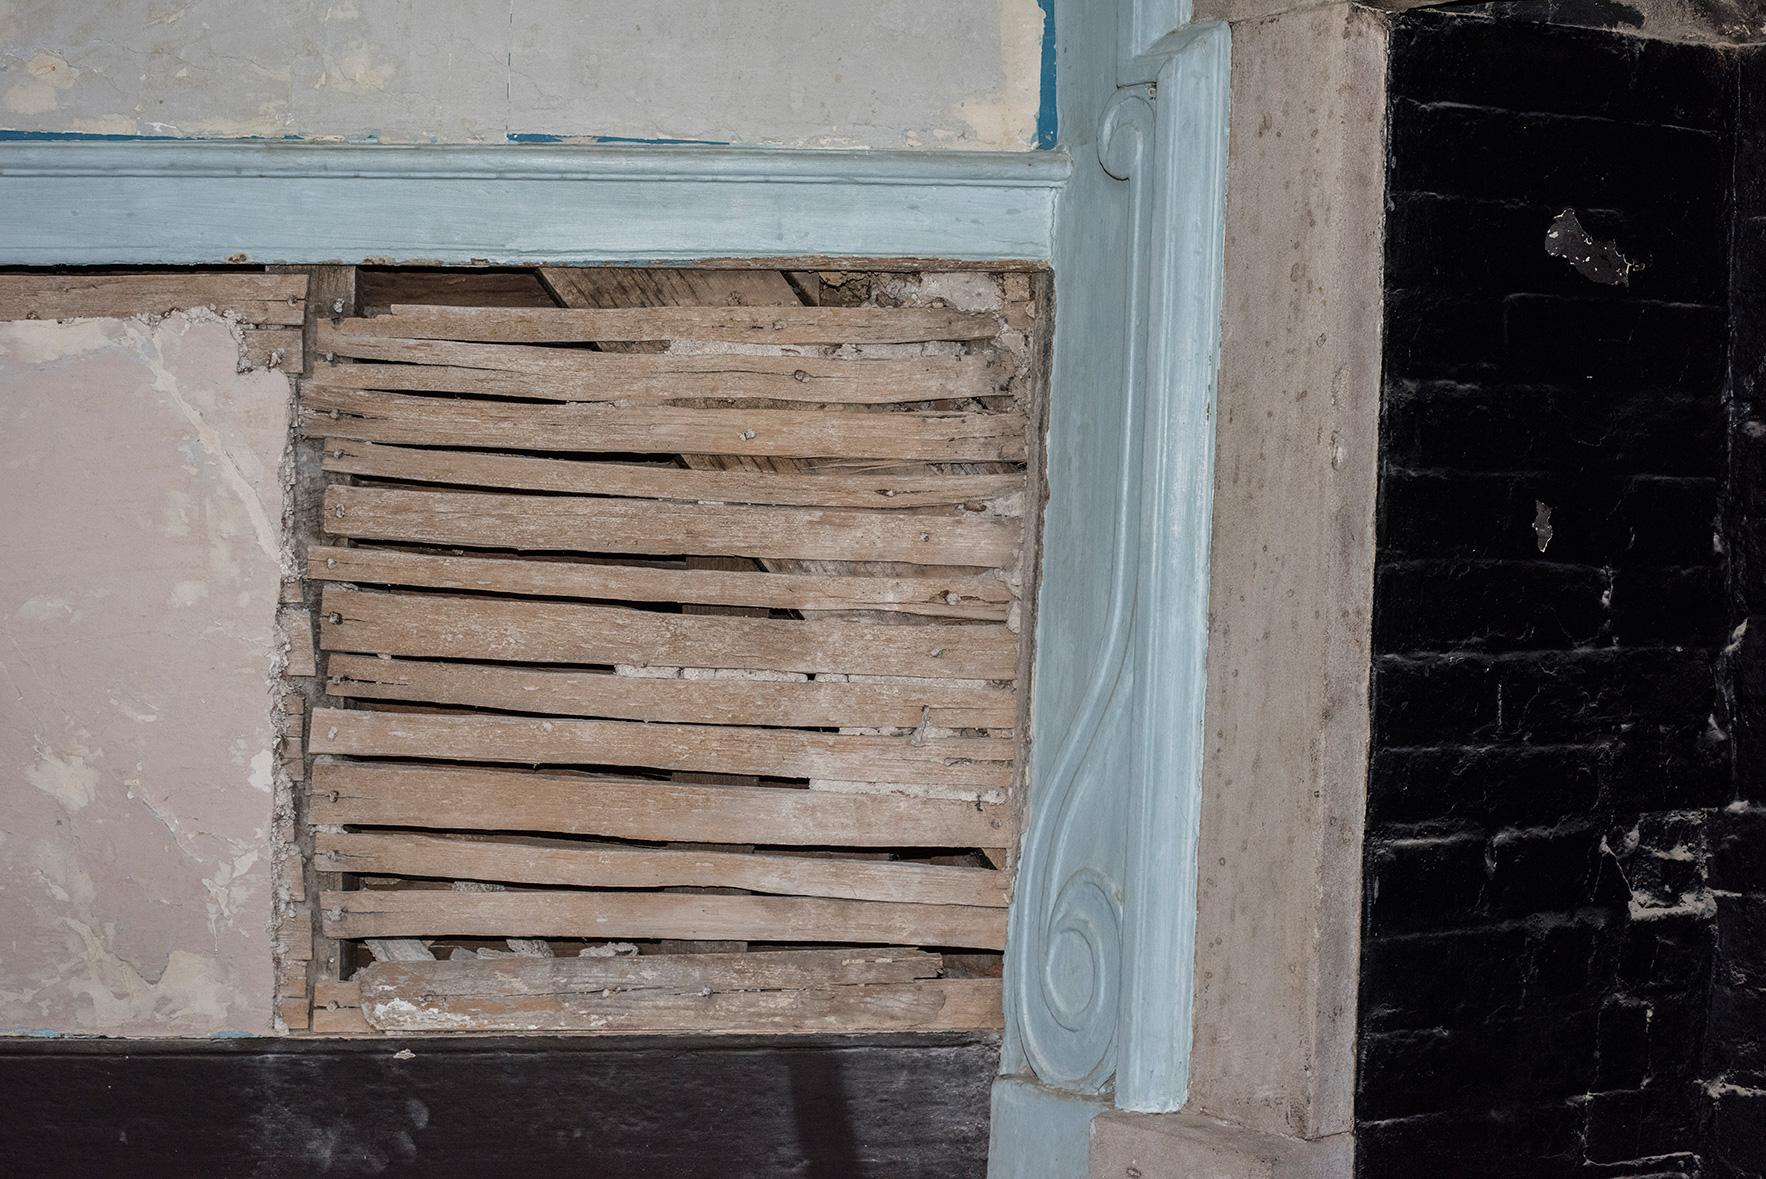 Plaster removed from the east wall of the Chintz Room uncovered an old shingle (seen just above the baseboard) used to repair the shift in the wall.  The shingle is nailed in using handmade wrought nails that date the repair to George Washington's lifetime.